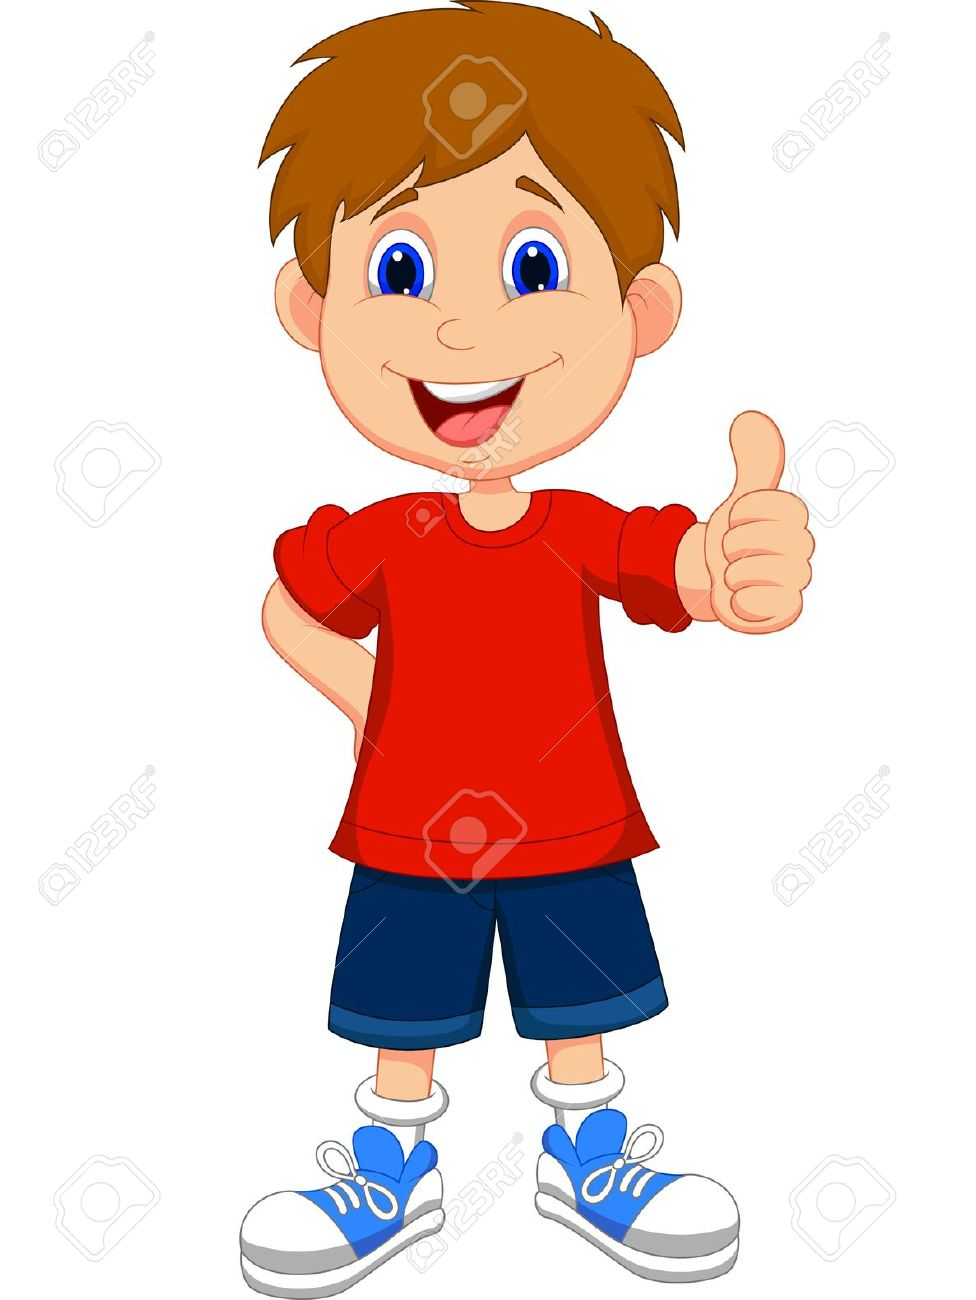 Boy clipart thumbs up Up thumbs Thumbs kid clipart